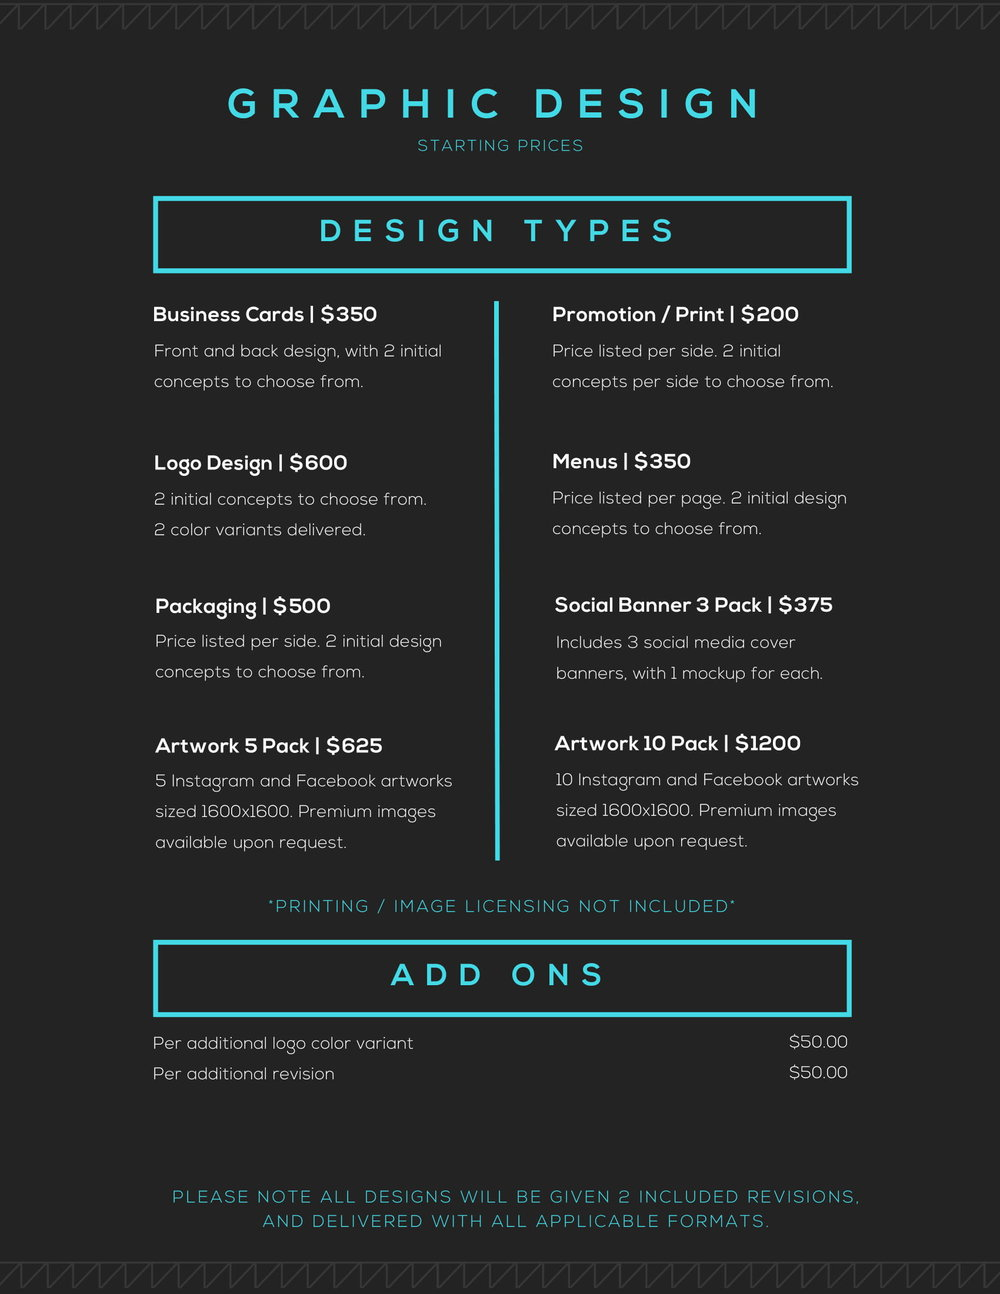 Graphic Design Price Chart (1)-1.jpg